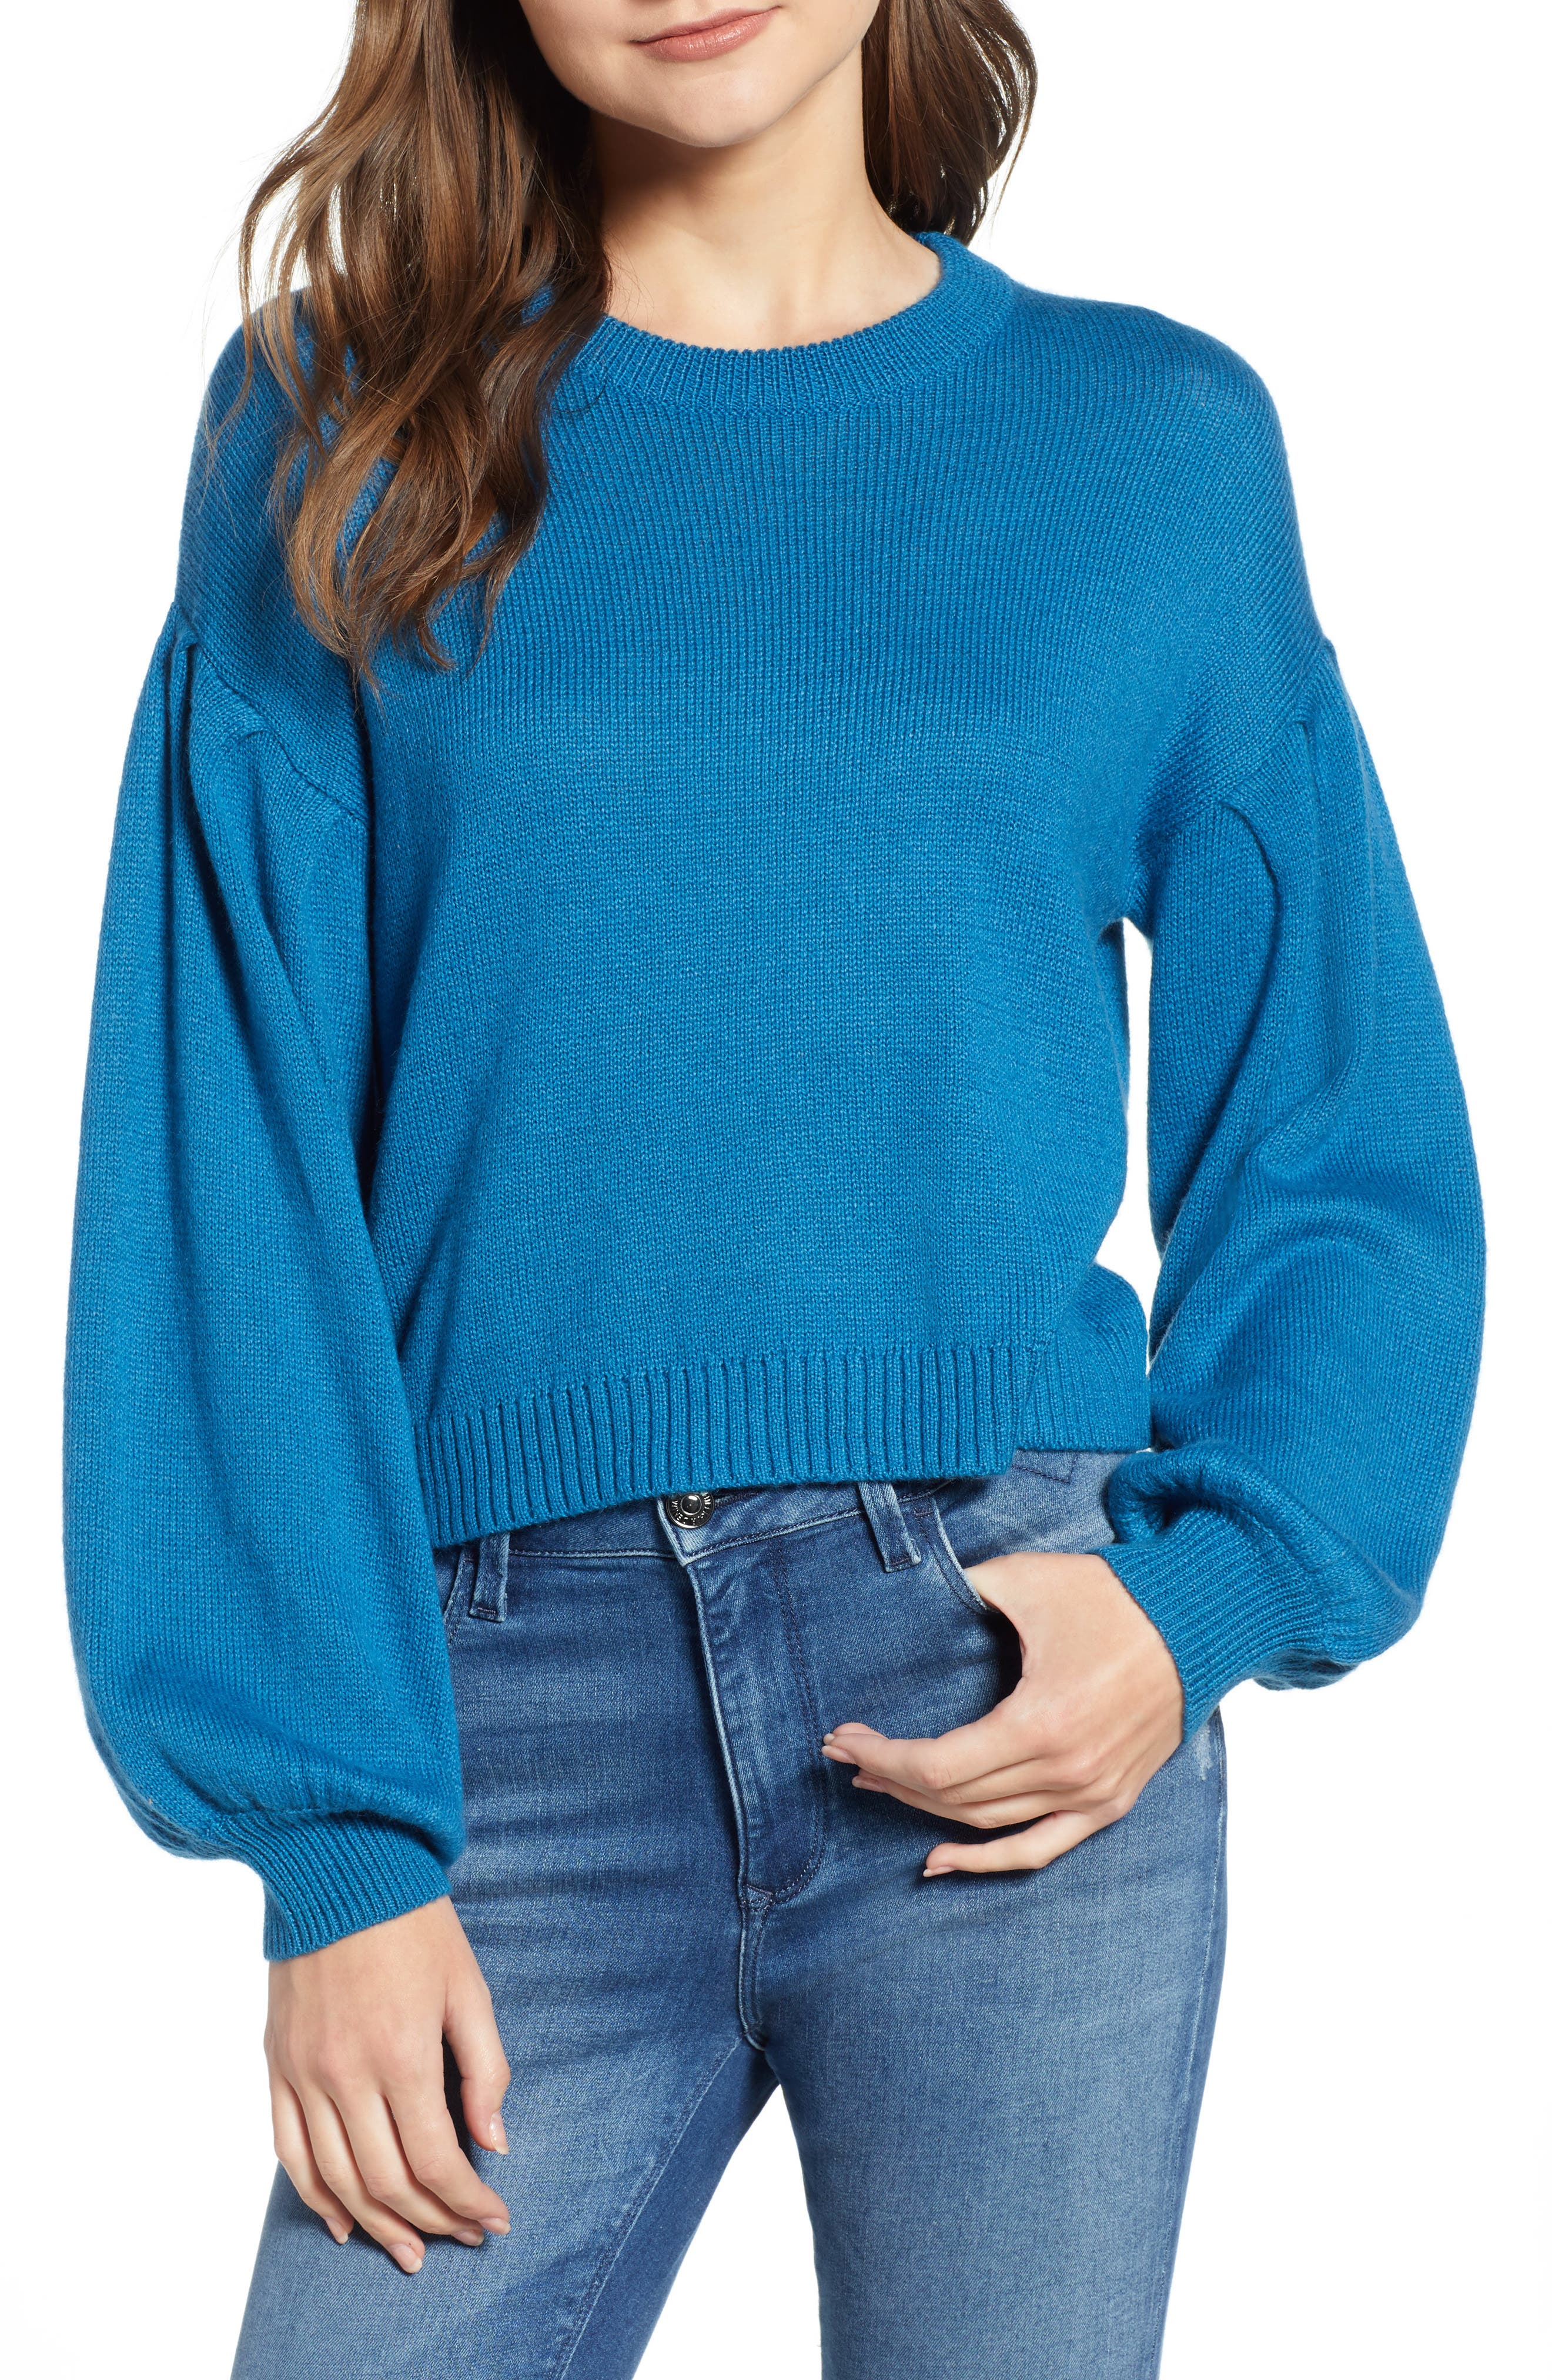 Blouson Sleeve Sweater,                             Main thumbnail 1, color,                             TEAL SAPPHIRE